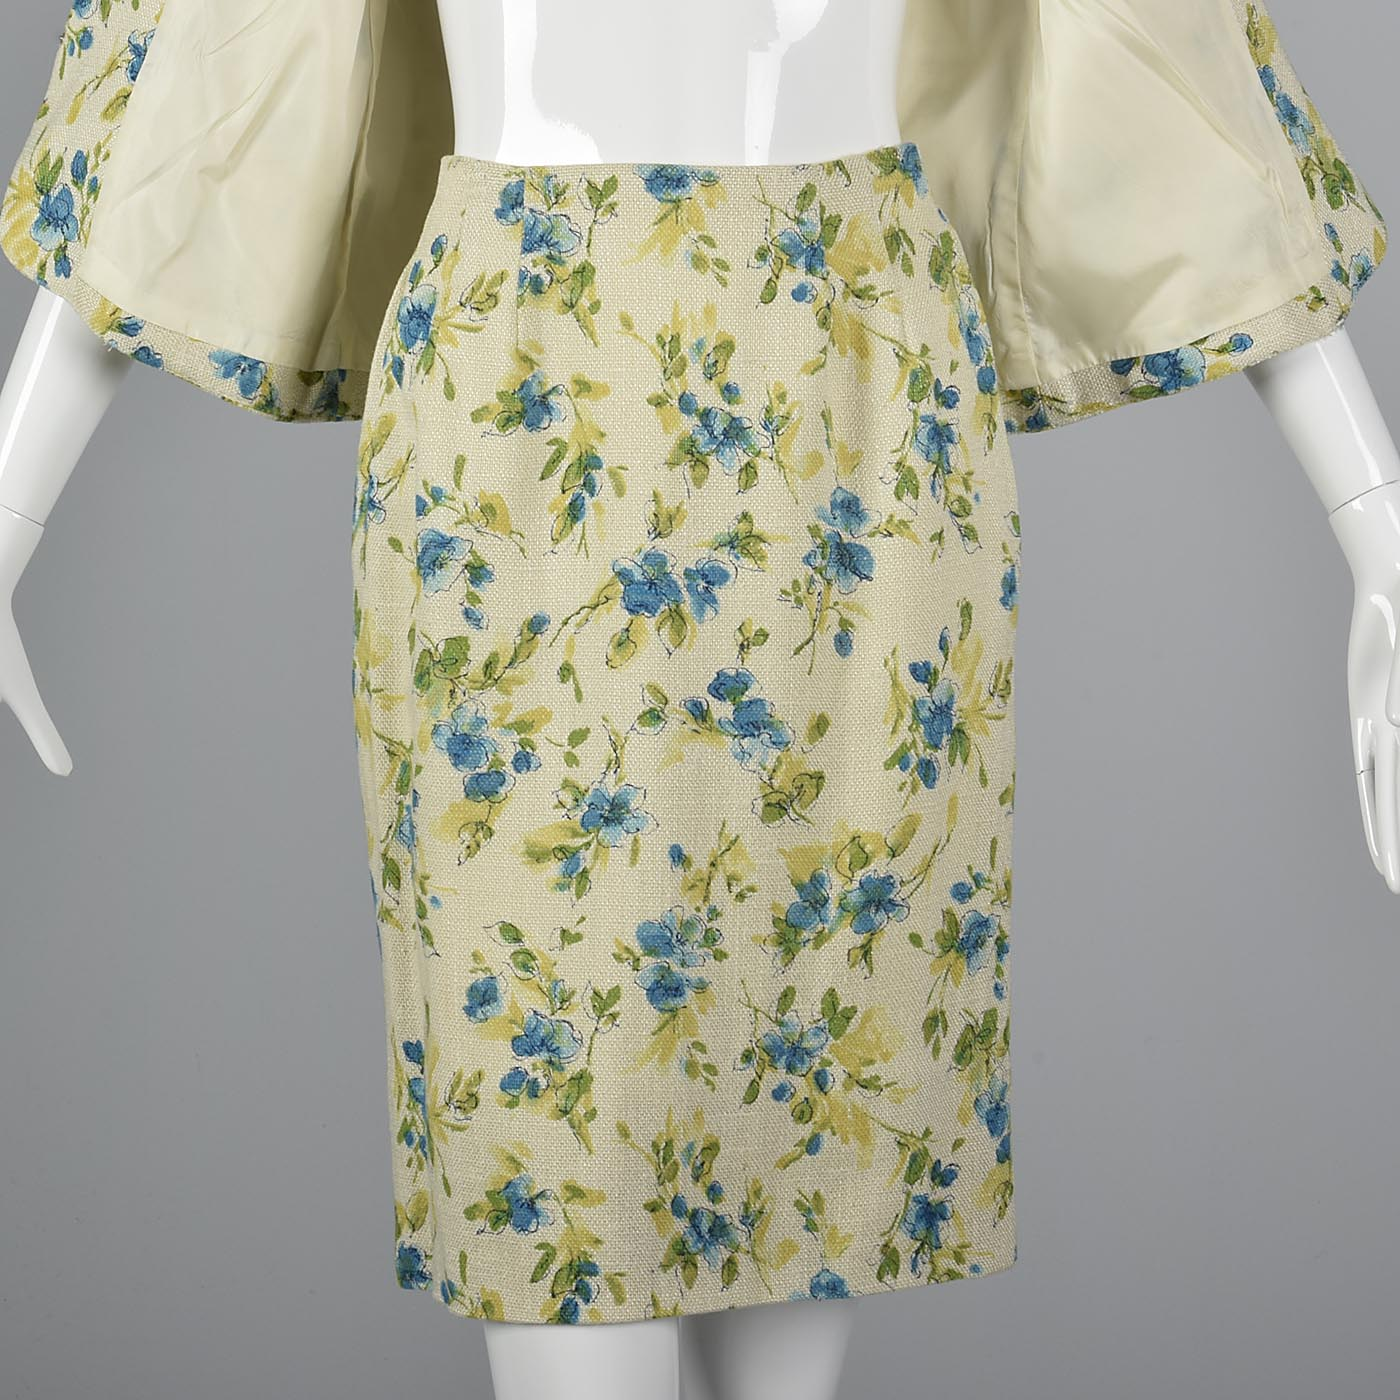 1960s Spring Skirt Suit in Floral Print